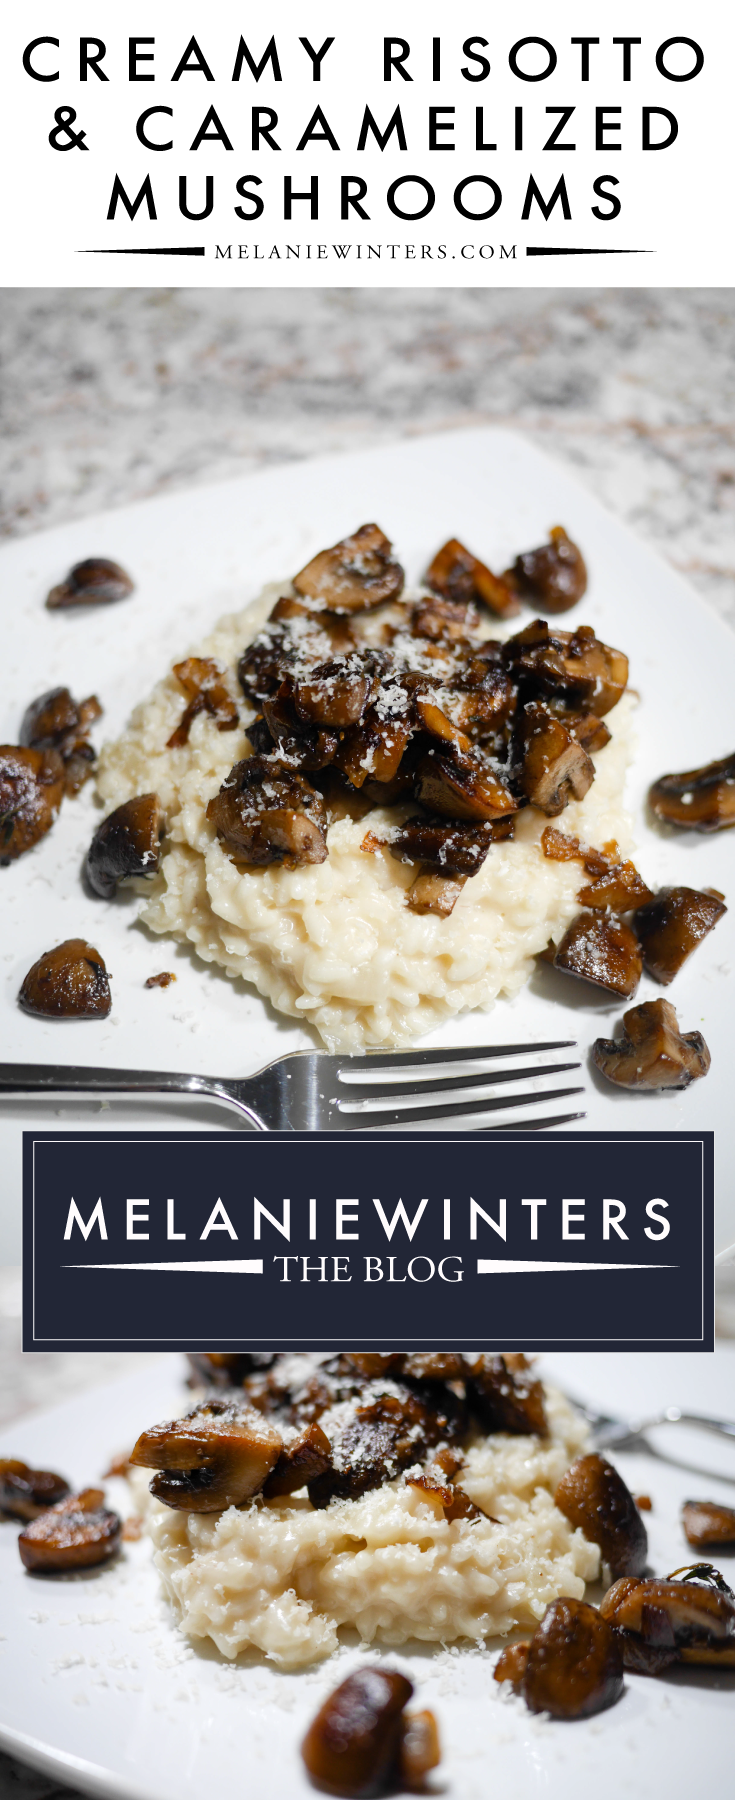 Although risotto is a bit time consuming, it's really quite easy - anyone can make it, and it's TOTALLY worth it! This creamy risotto with caramelized onions is great as a meal in itself or as a side dish.